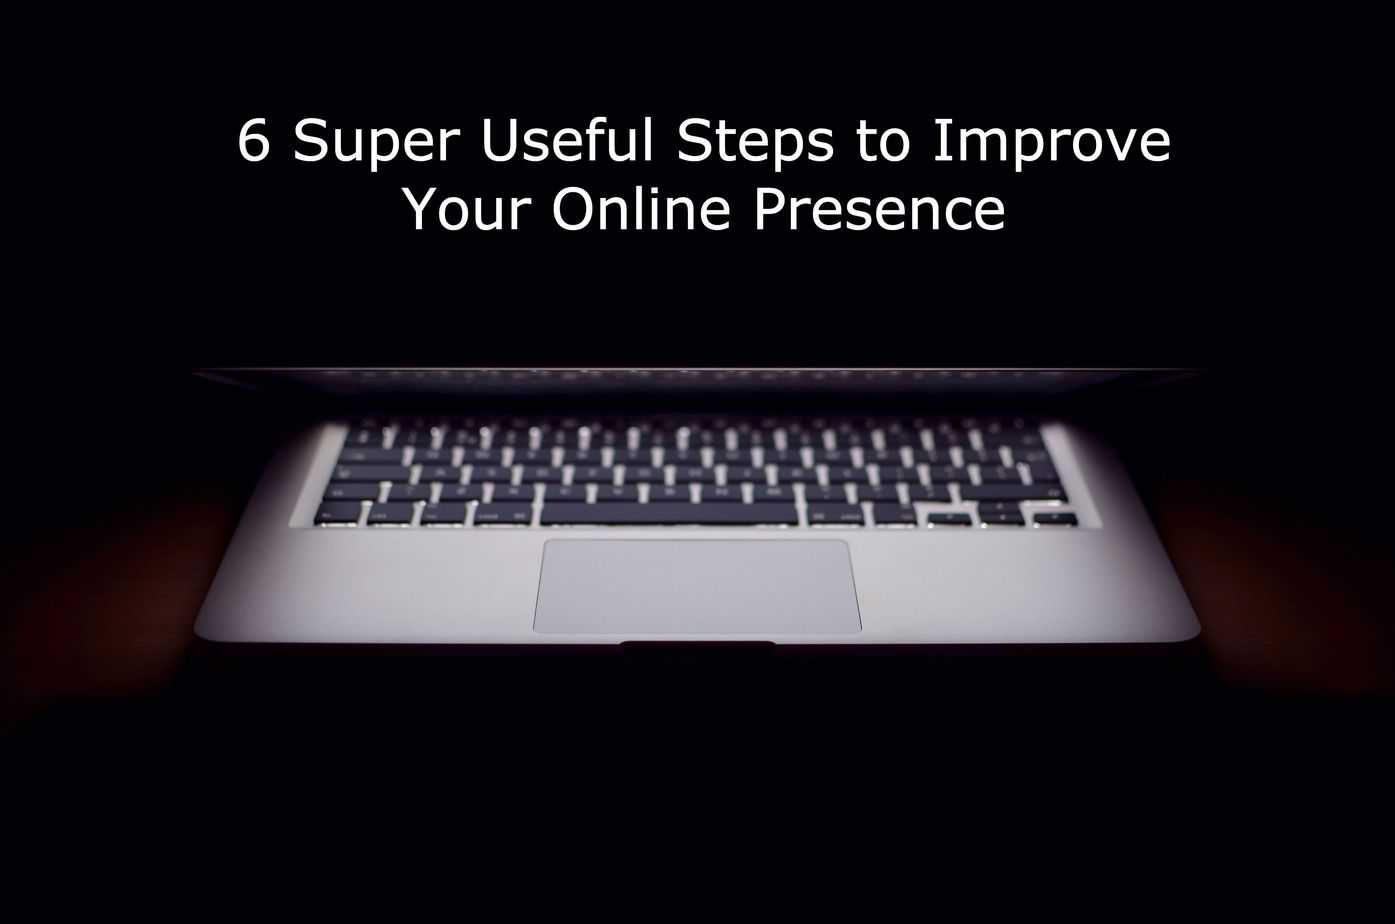 build an online presence with SEO